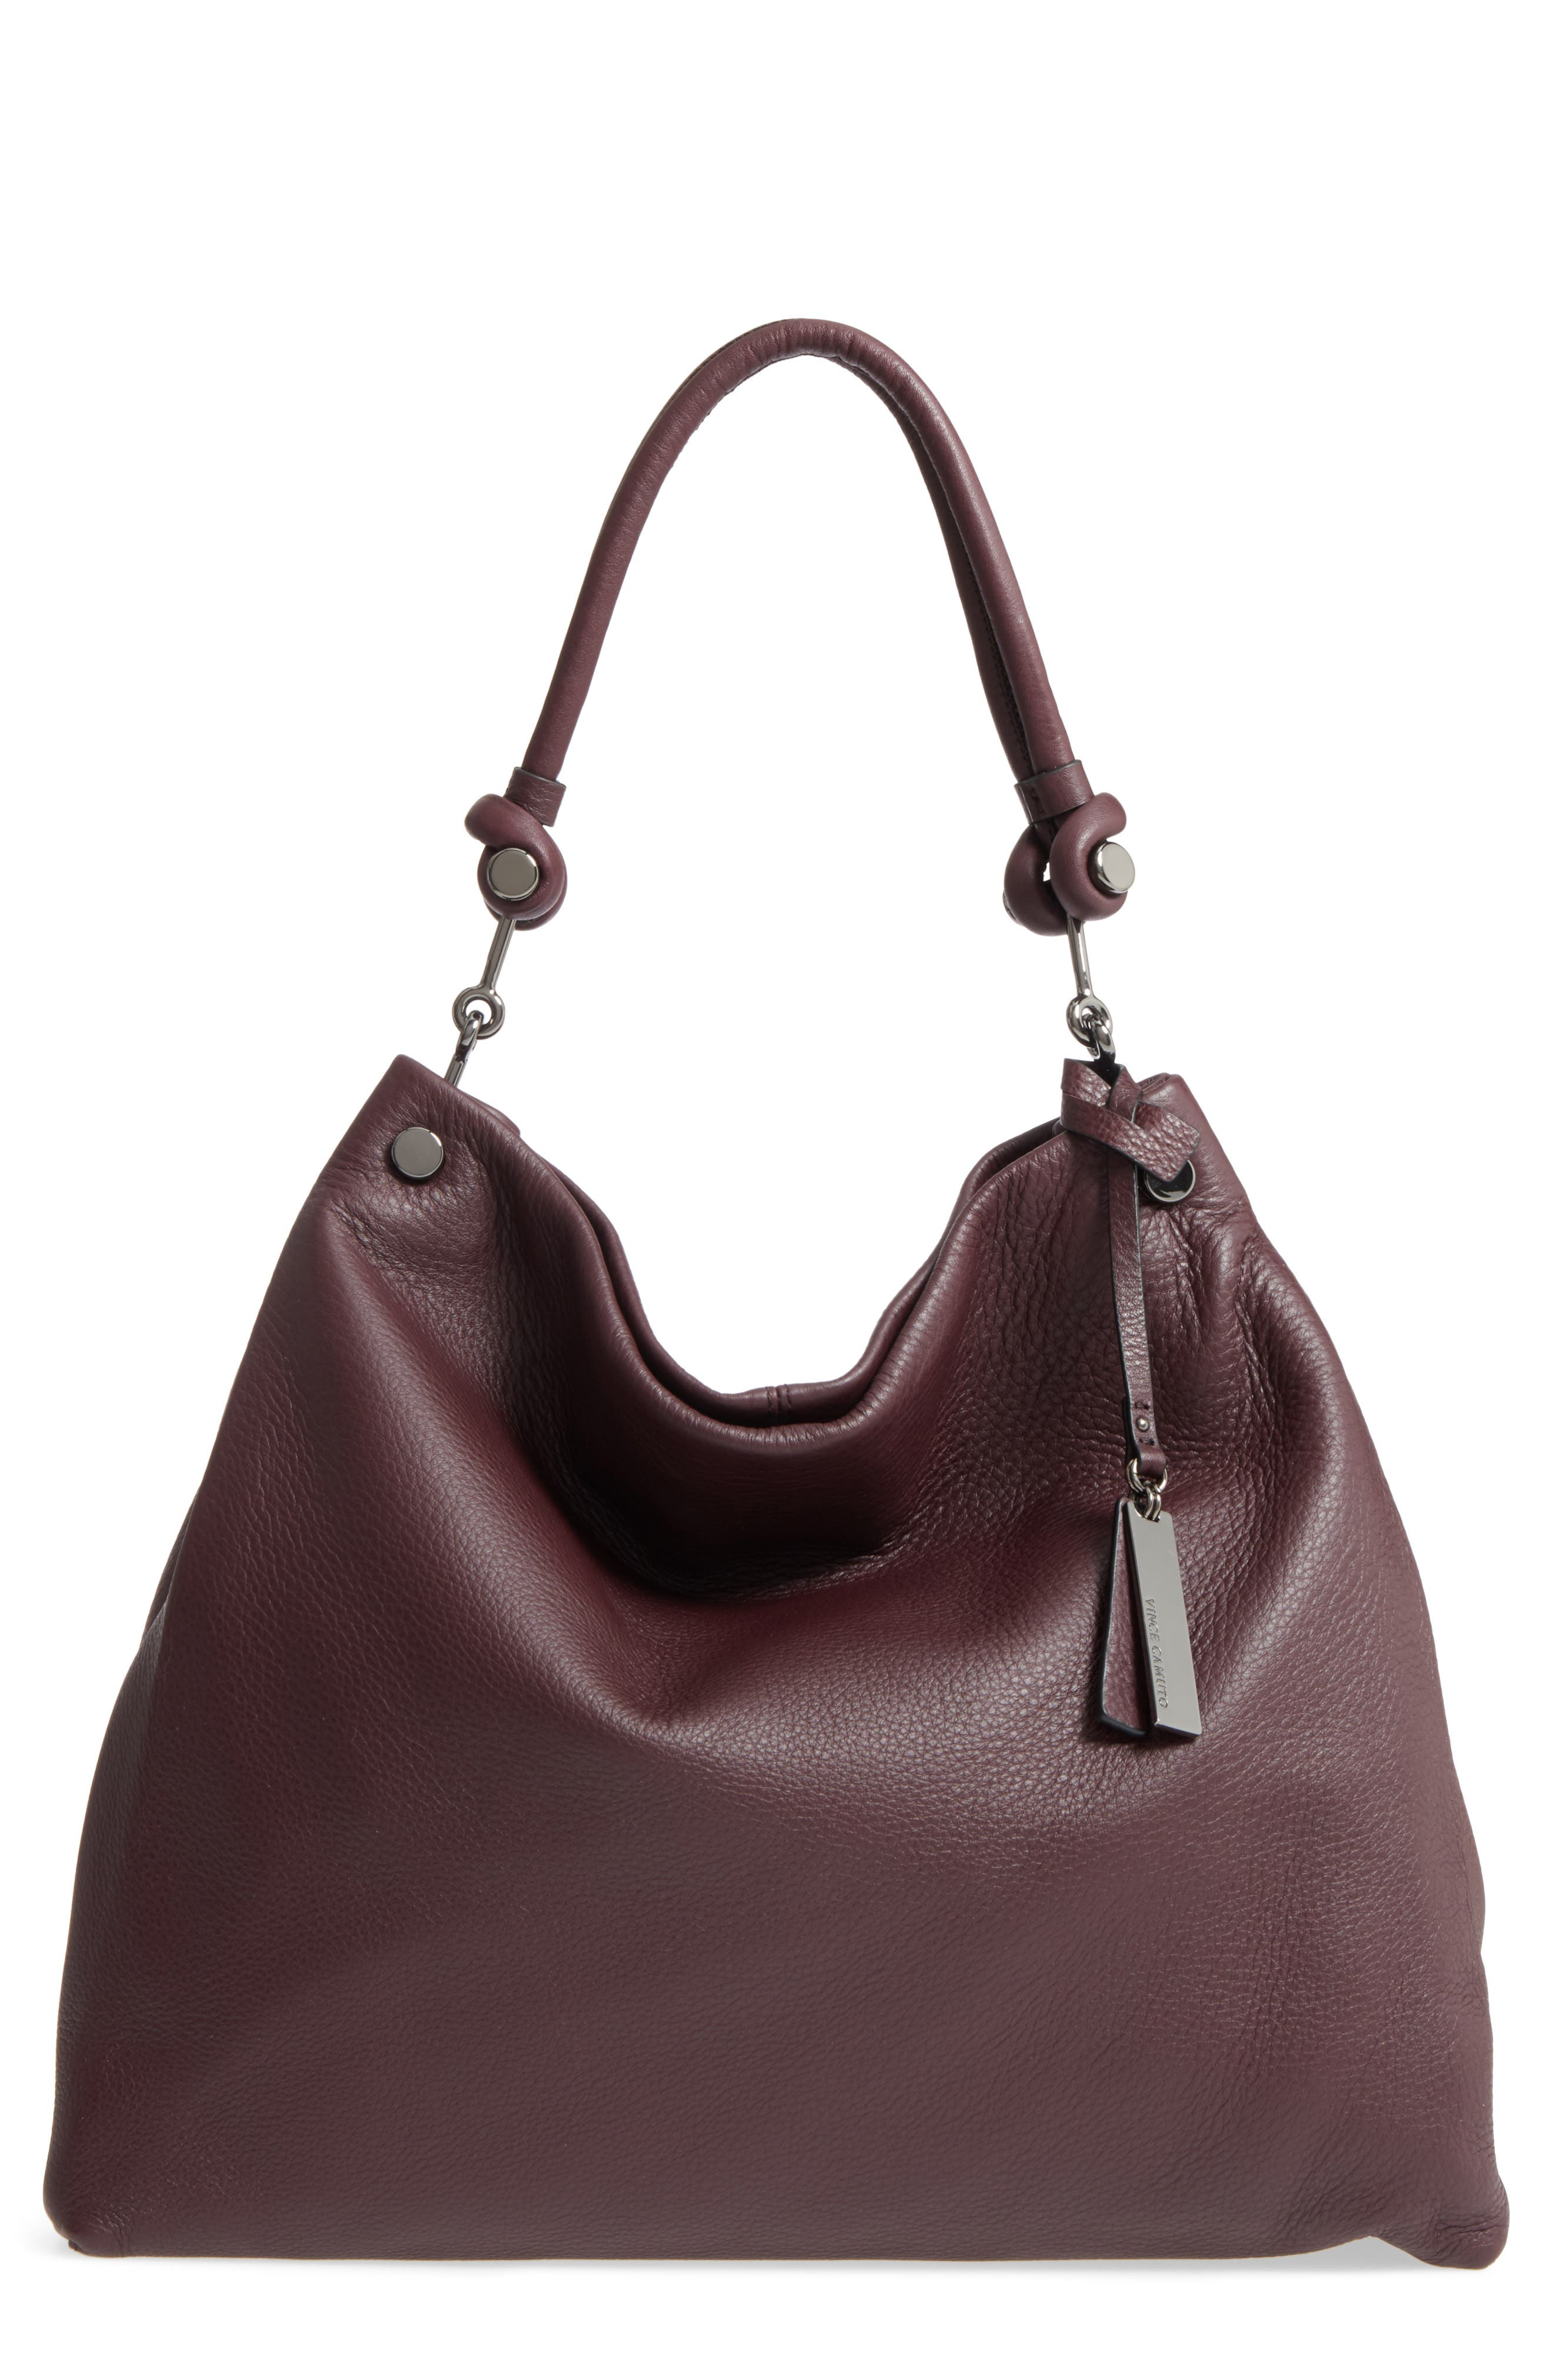 Vince Camuto 'Ruell' Hobo